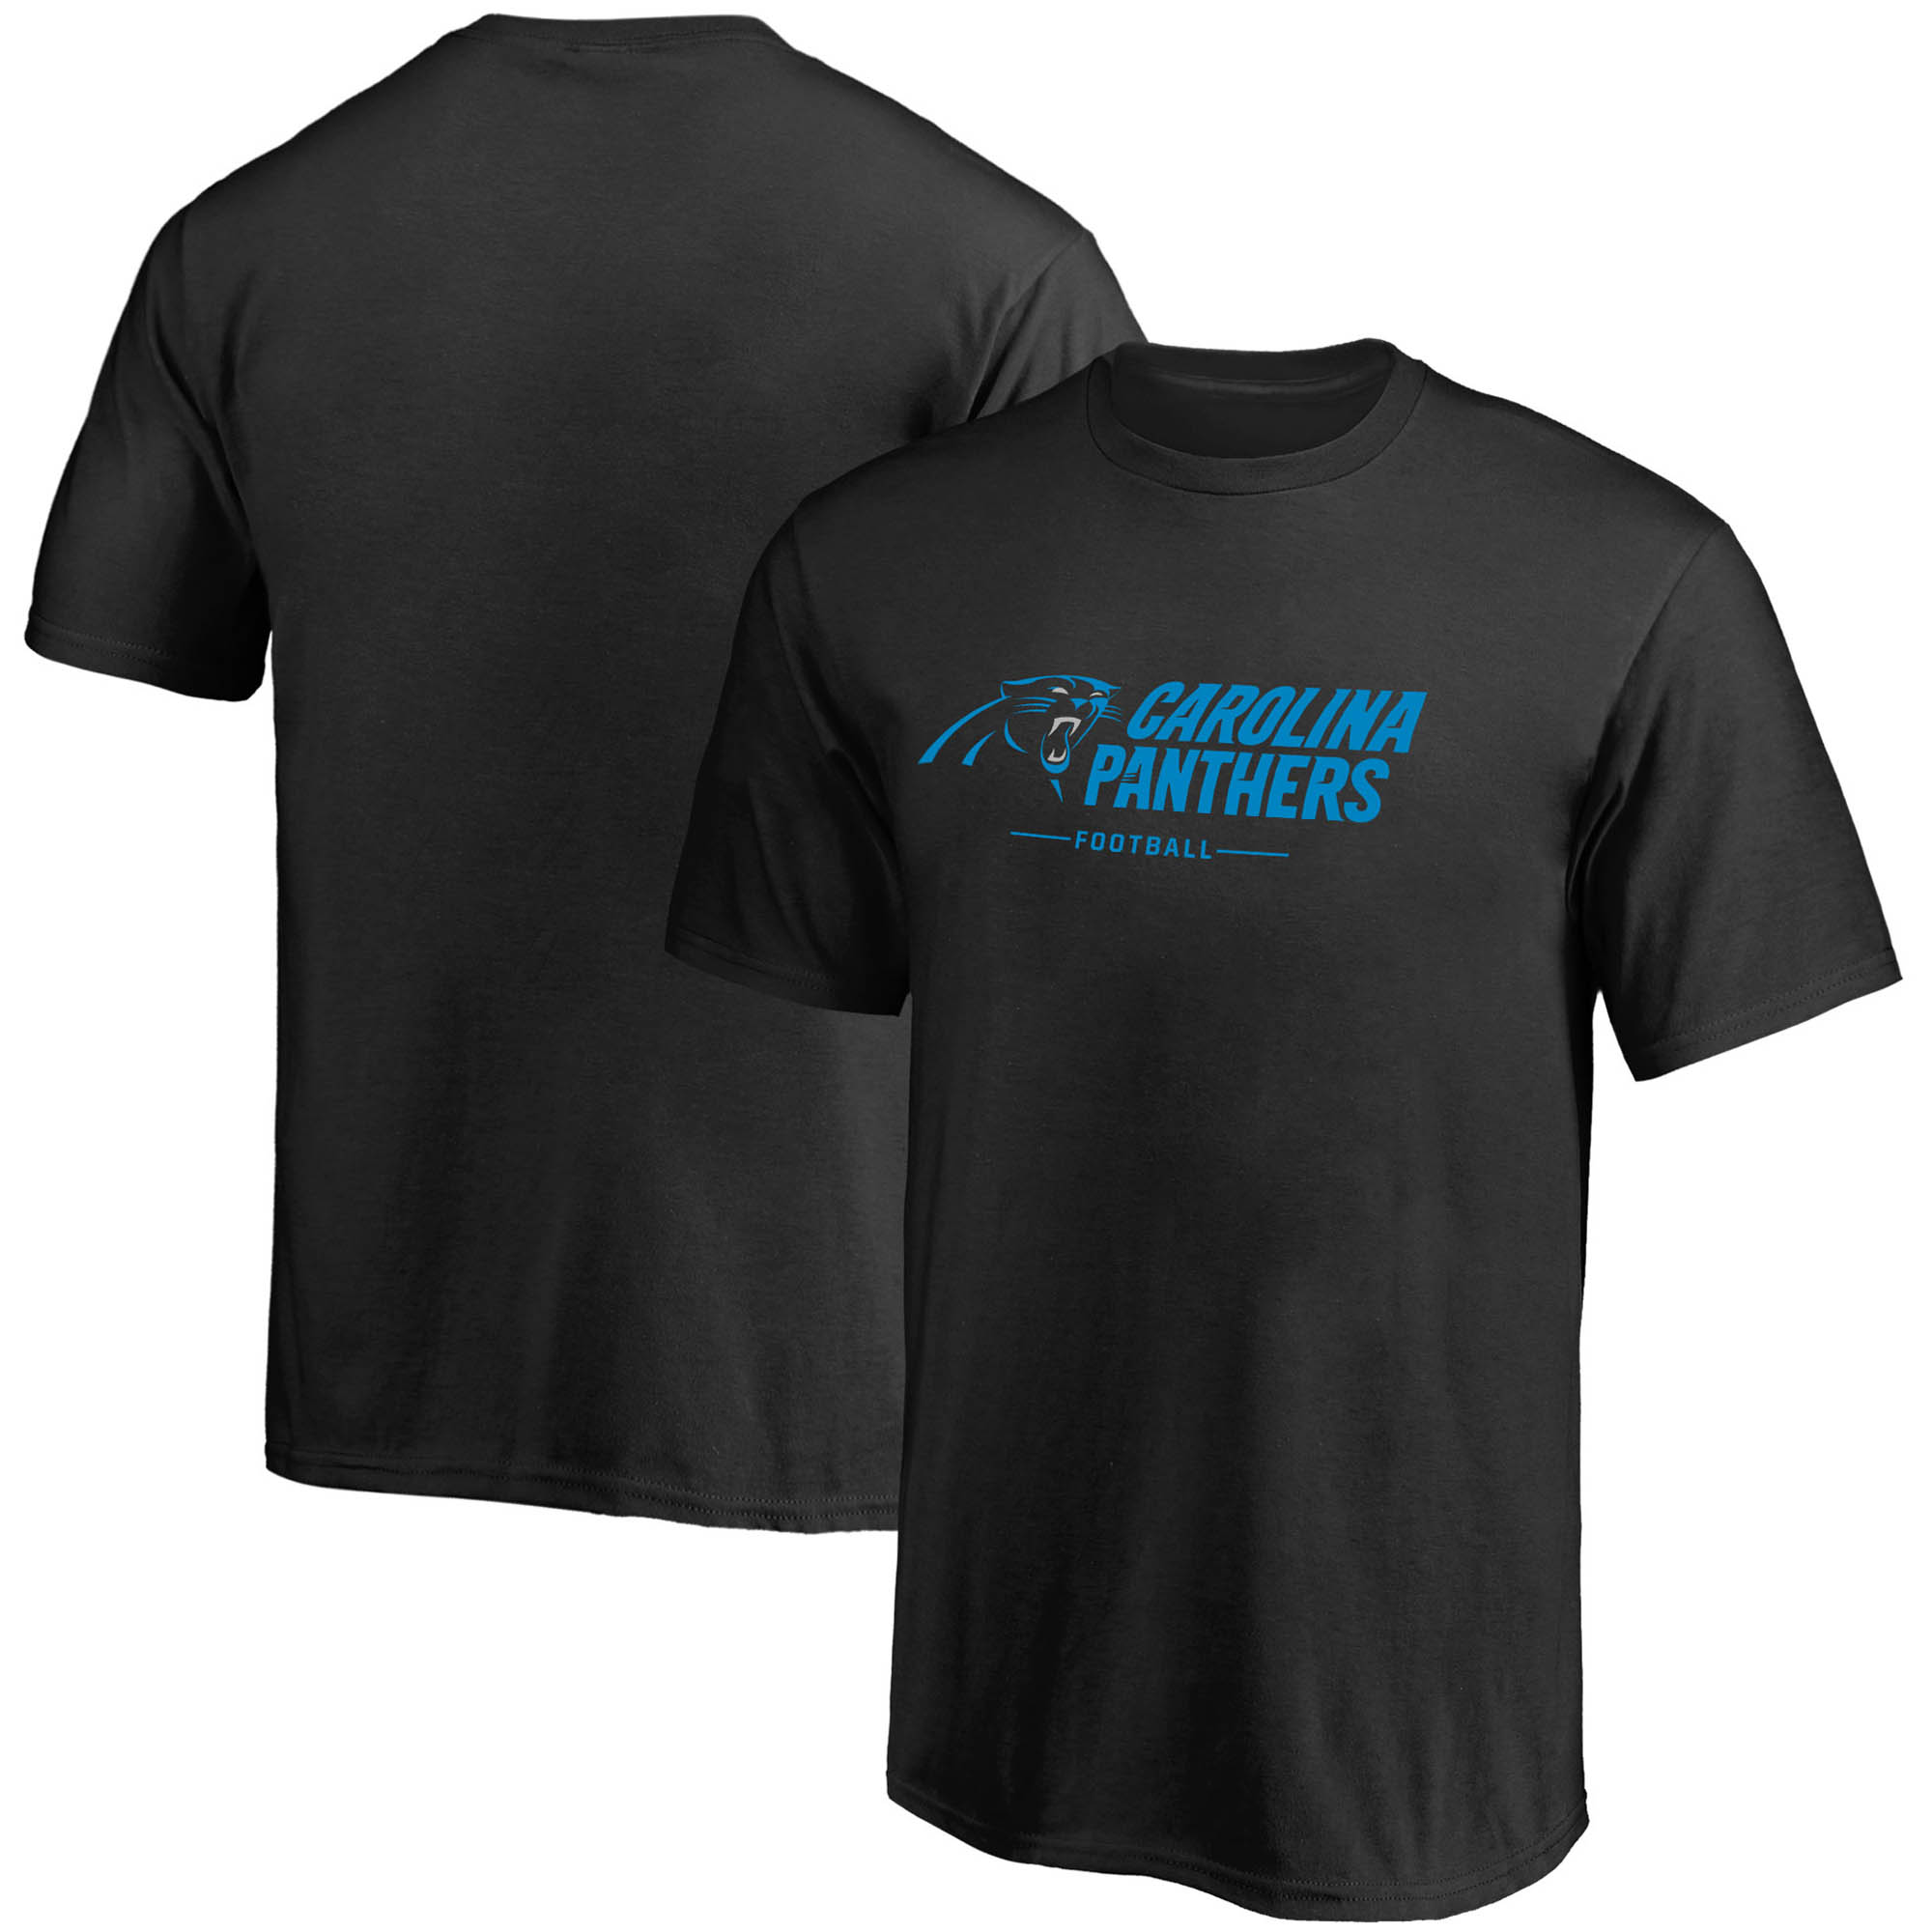 Carolina Panthers NFL Pro Line by Fanatics Branded Youth Team Lockup - T-Shirt - Black